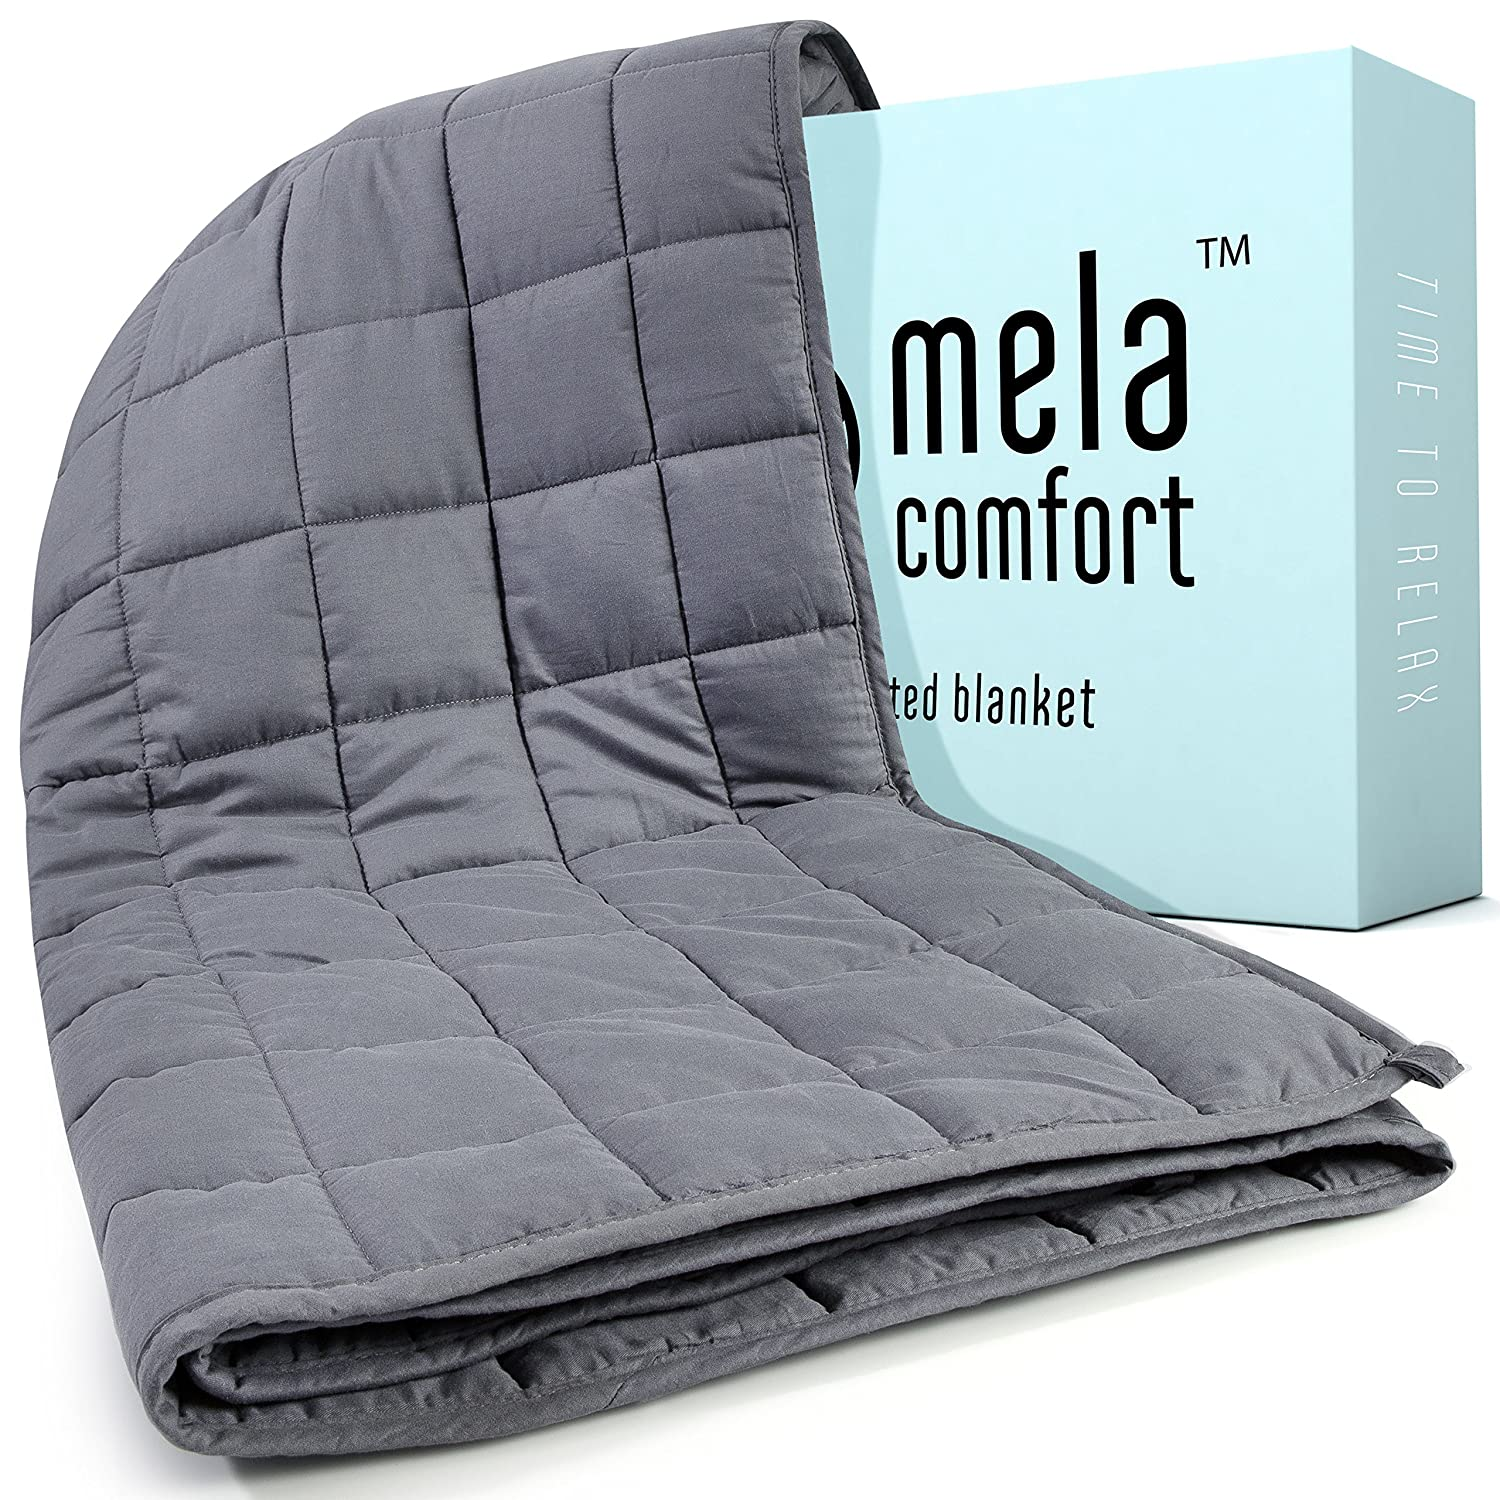 Amazon.com: Weighted Blanket - 15LBS - Adult Queen Size - Helps ...